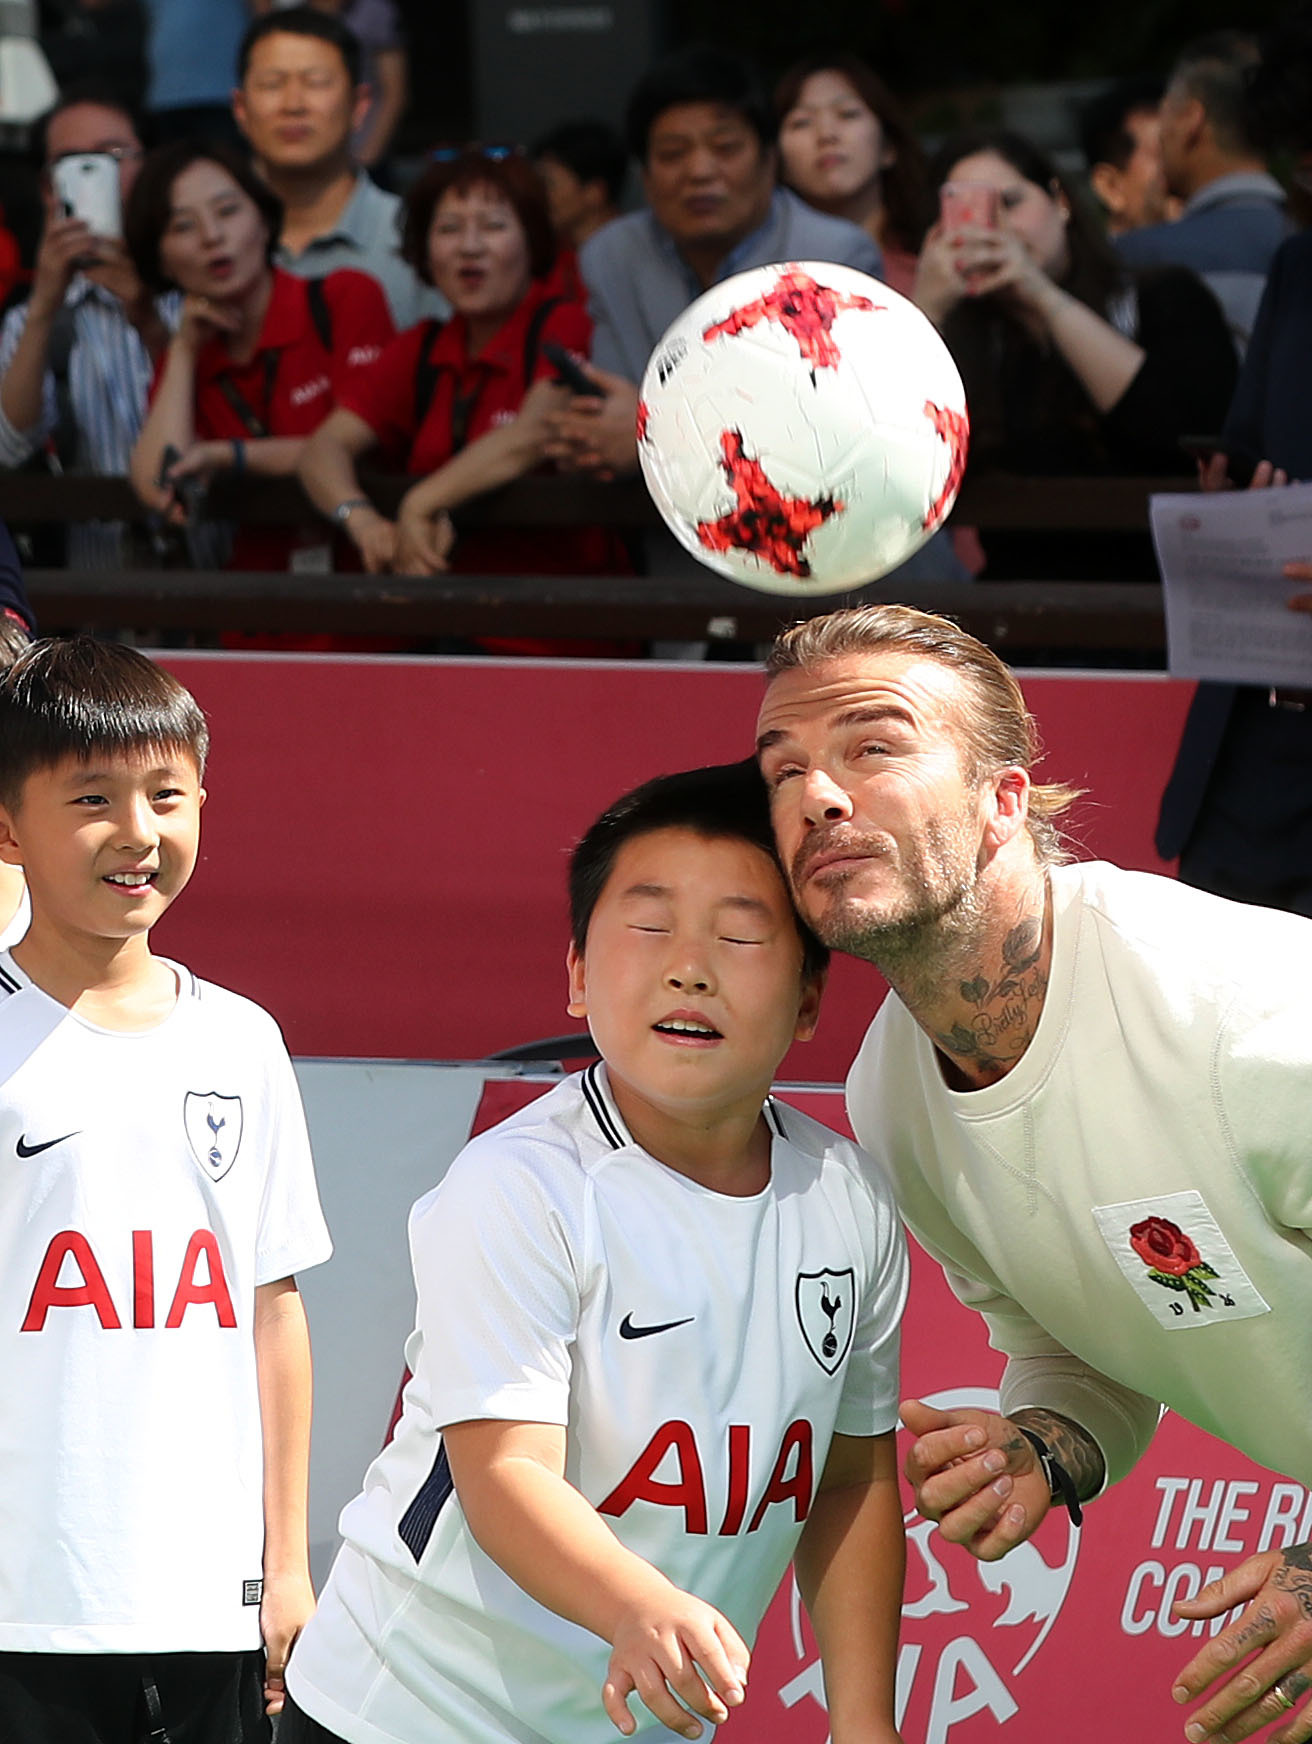 David Beckham visits a soccer clinic with local kids in Seoul, Korea on Sept. 20, 2017.